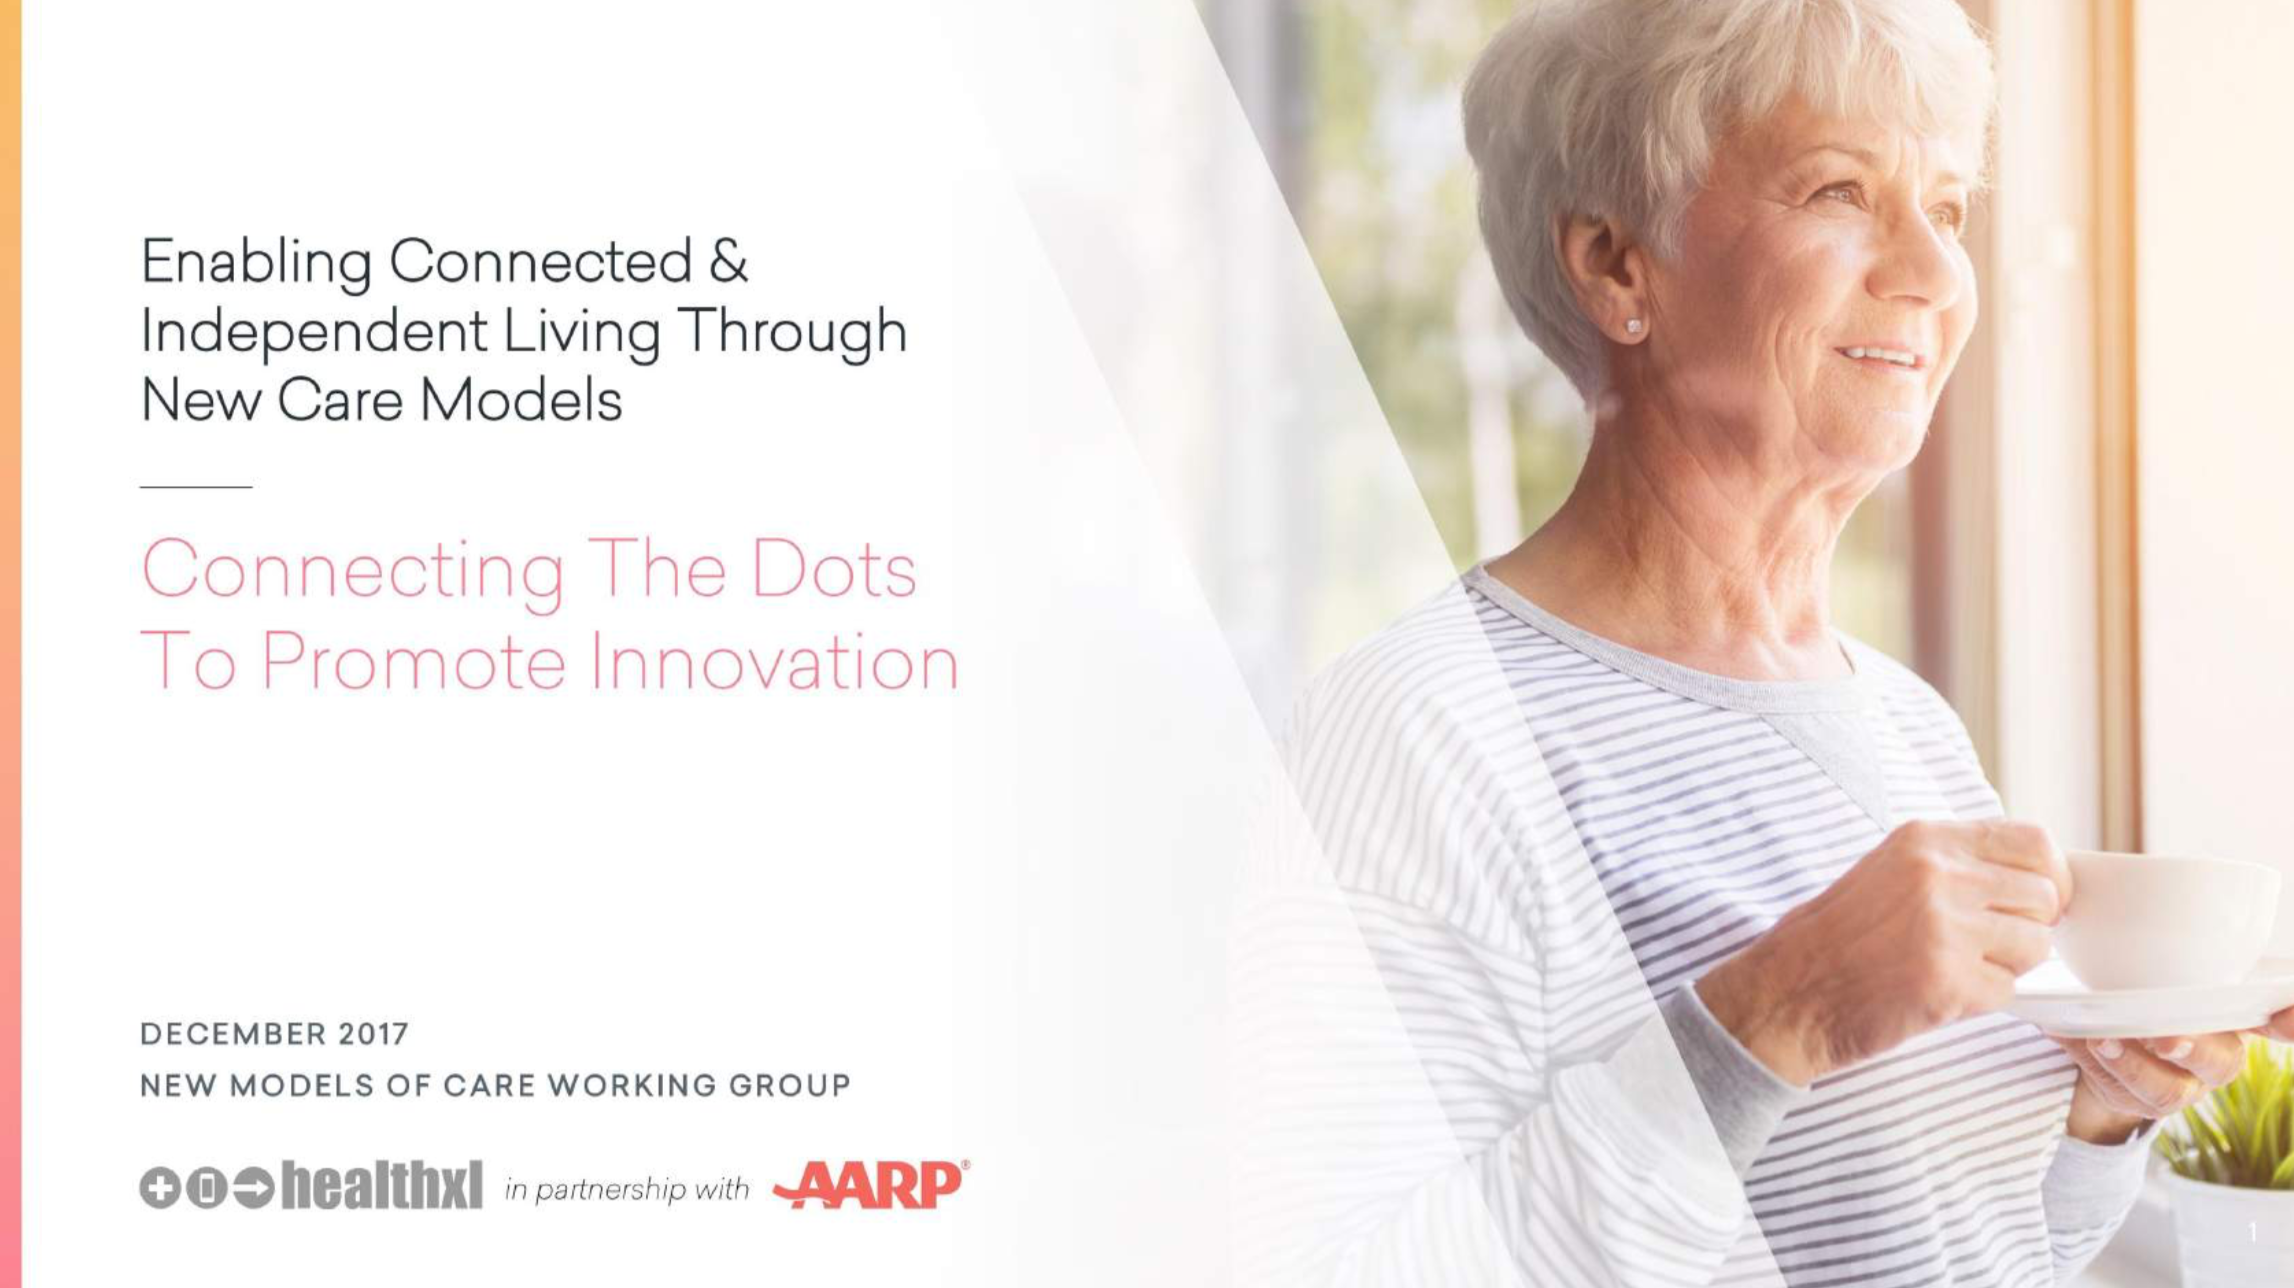 Enabling Connected & Independent Living Through New Care Models - December 2017. Volar Health, AARP, and HealthXL co-authored a report highlighting the ways digital health can impact senior living. It also highlights perspectives from venture capitalists on what it takes to succeed in this market. Click on the title to download the report.